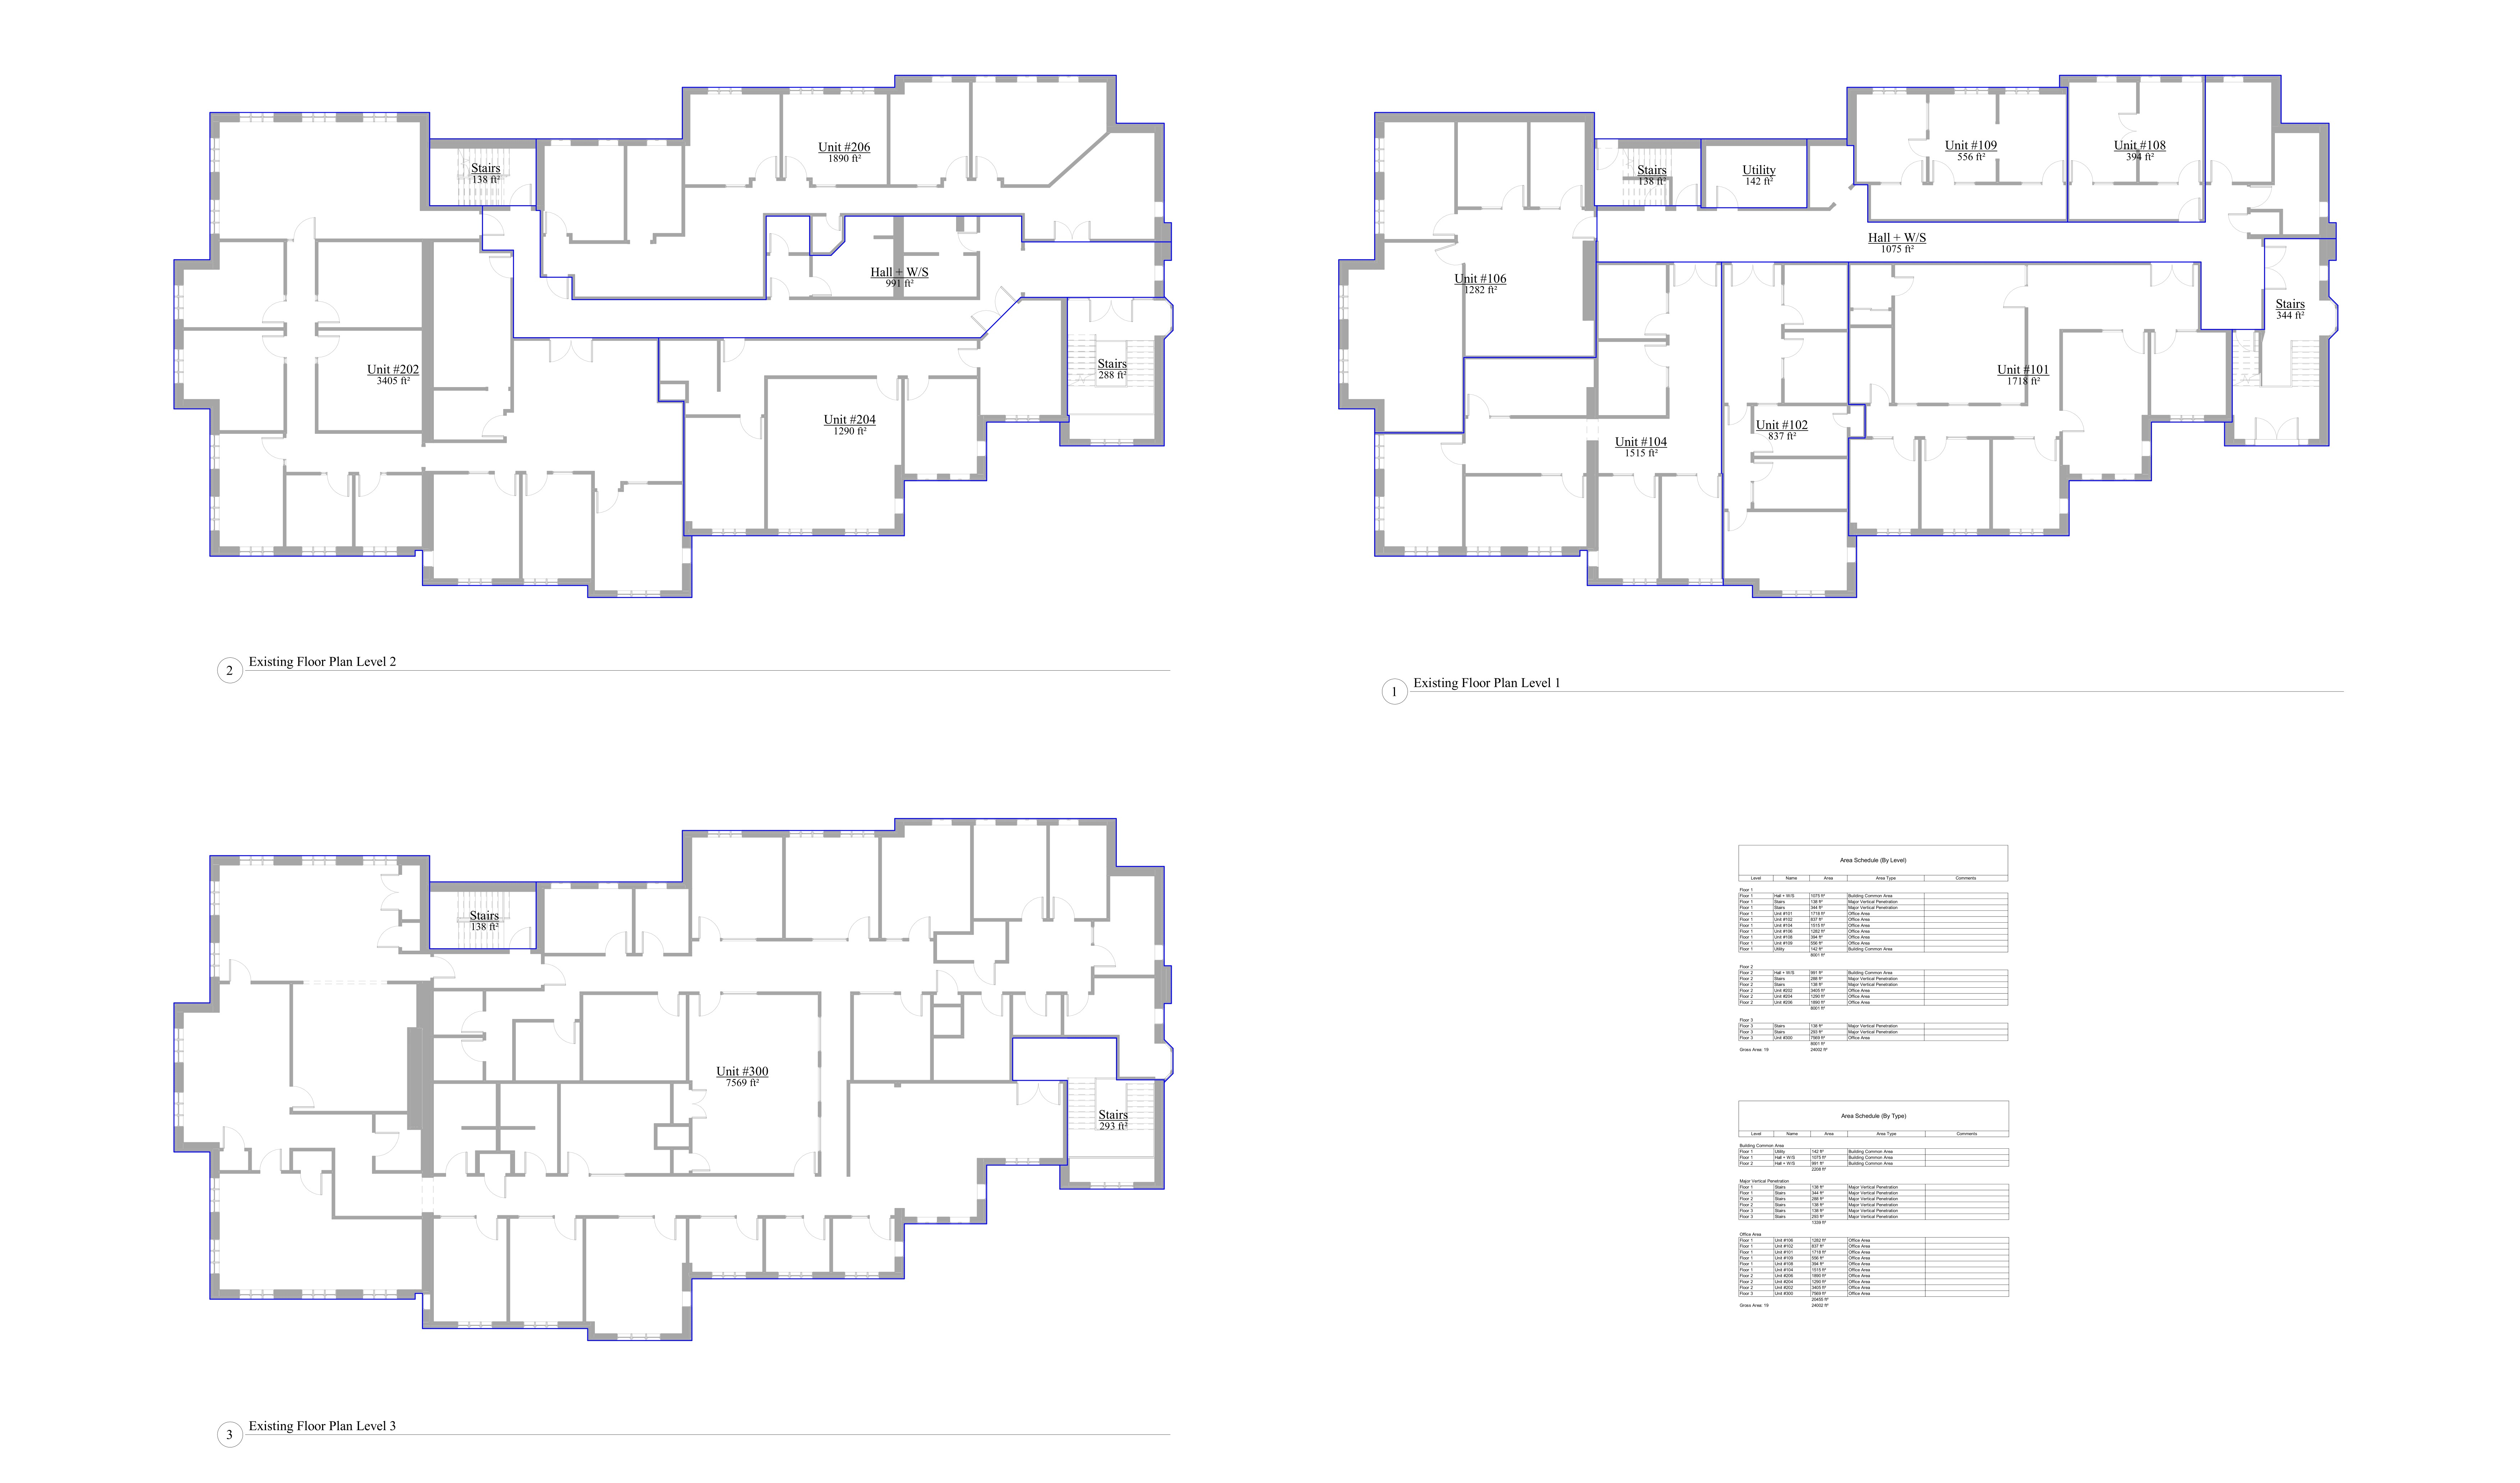 the AutoCad drawings of the accurate floor plans of all the existing units.